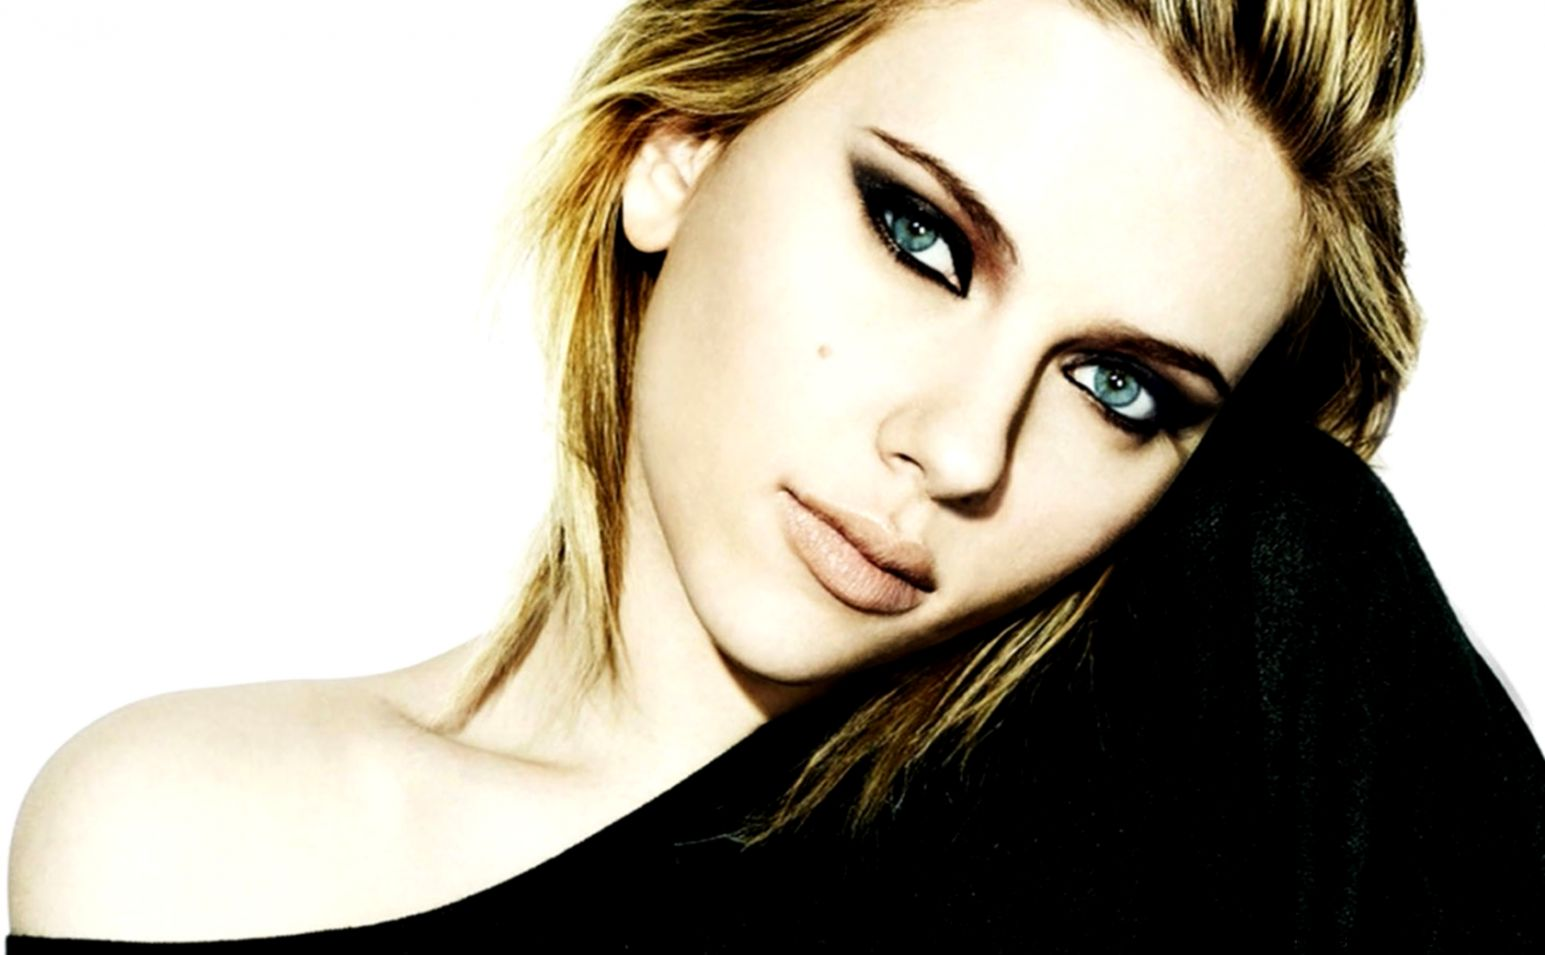 Scarlett Johansson Actress Portrait Hd Wallpaper  Best Desktop